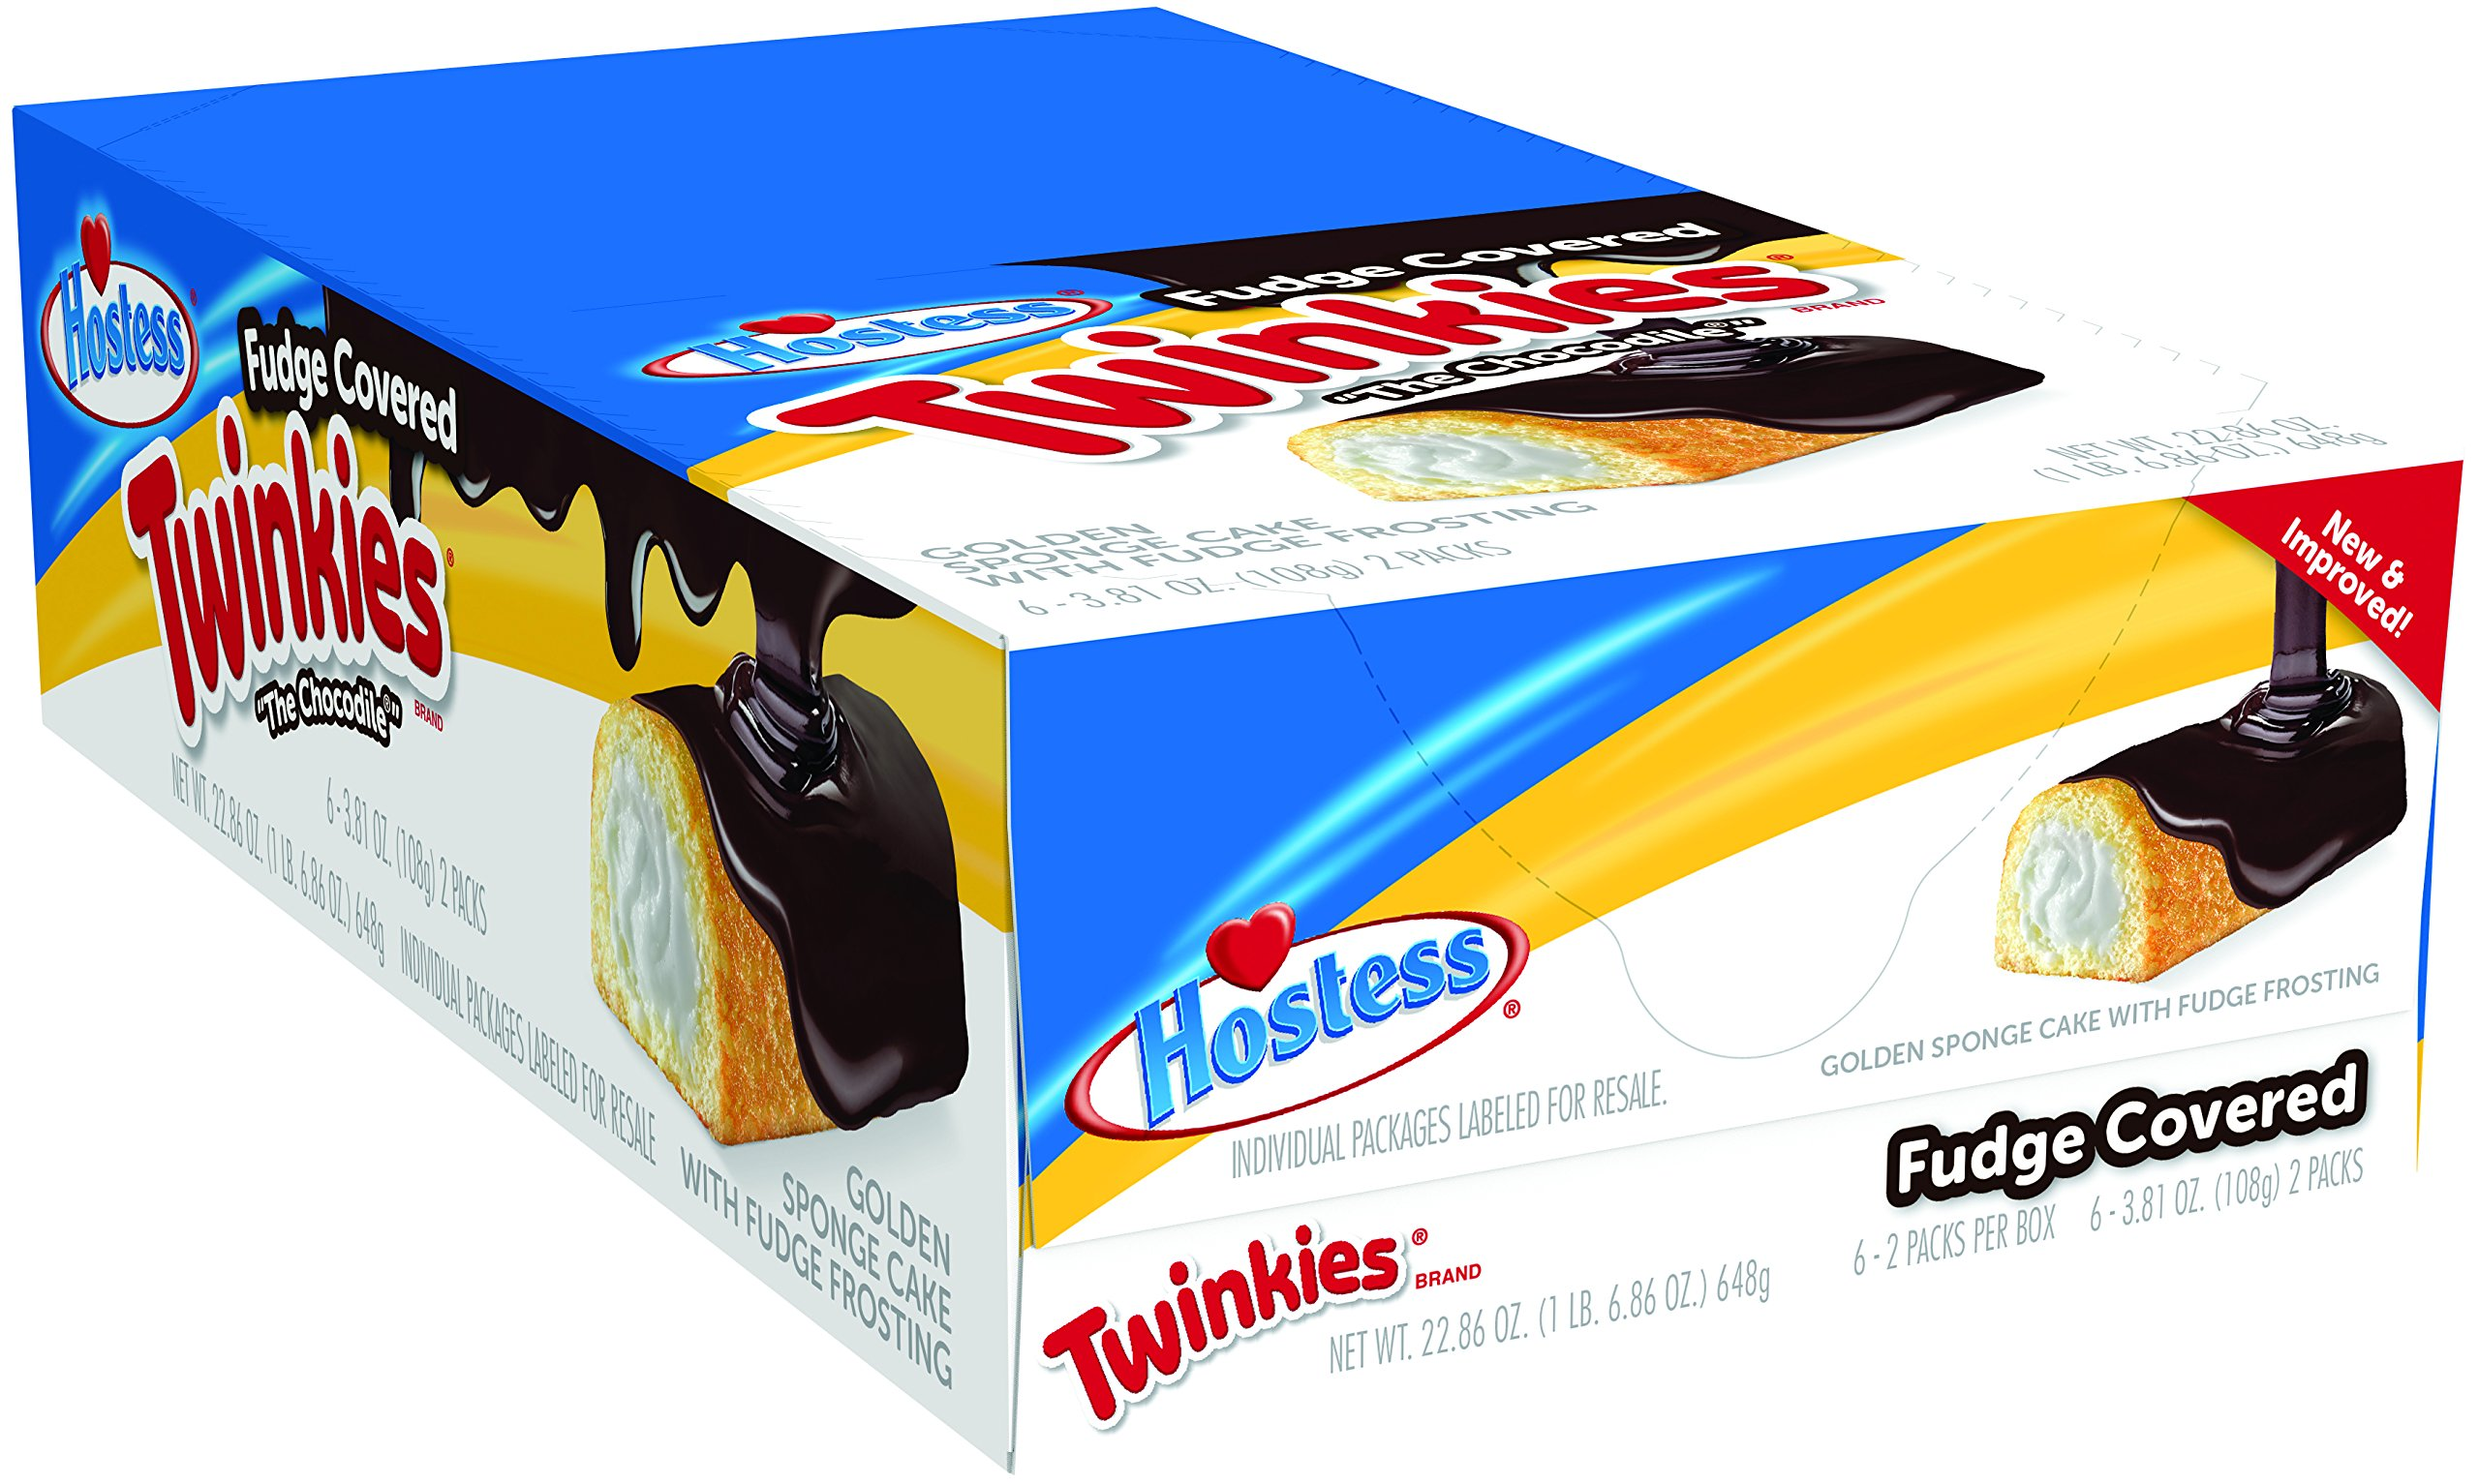 Hostess Twinkies, Fudge Covered, 3.81 Ounce, 6 Count (Pack of 6) by Hostess